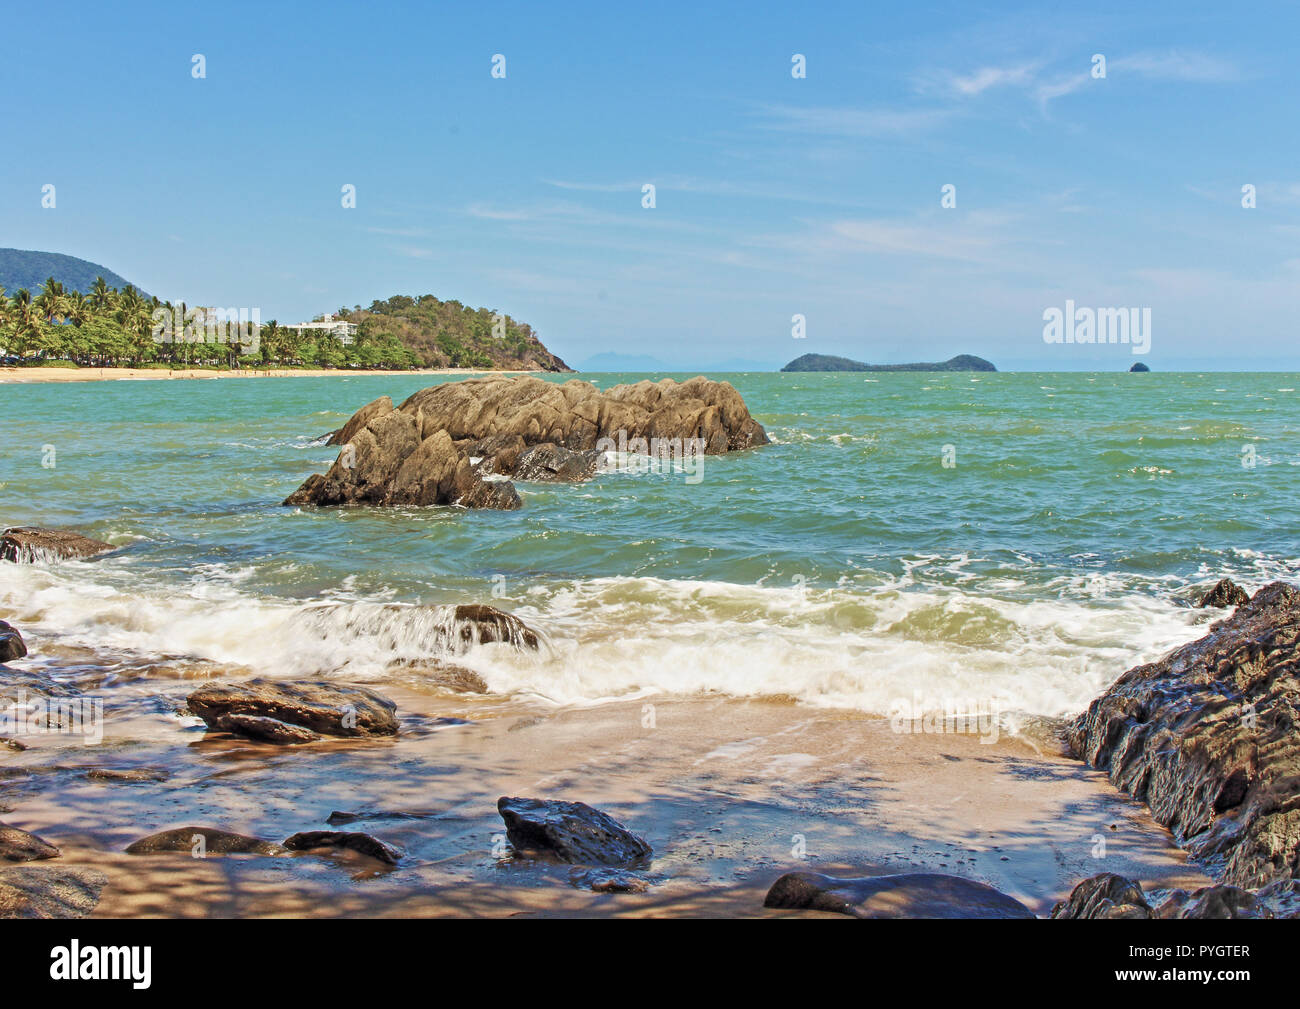 The scenic Trinity Beach from the south end looking northward towards Palm Cove in the Coral Sea. - Stock Image